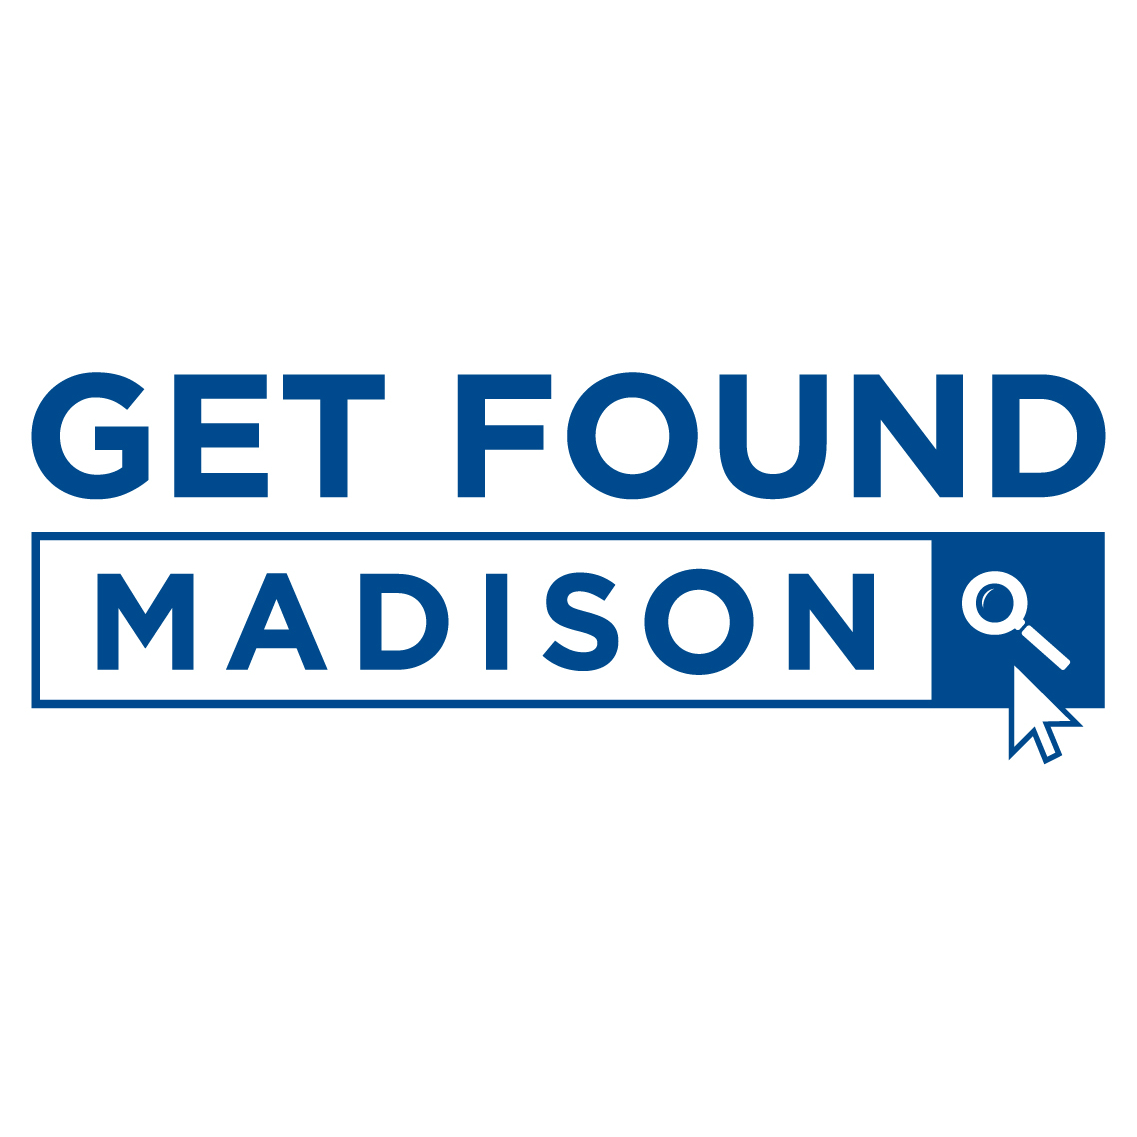 Get Found Madison logo